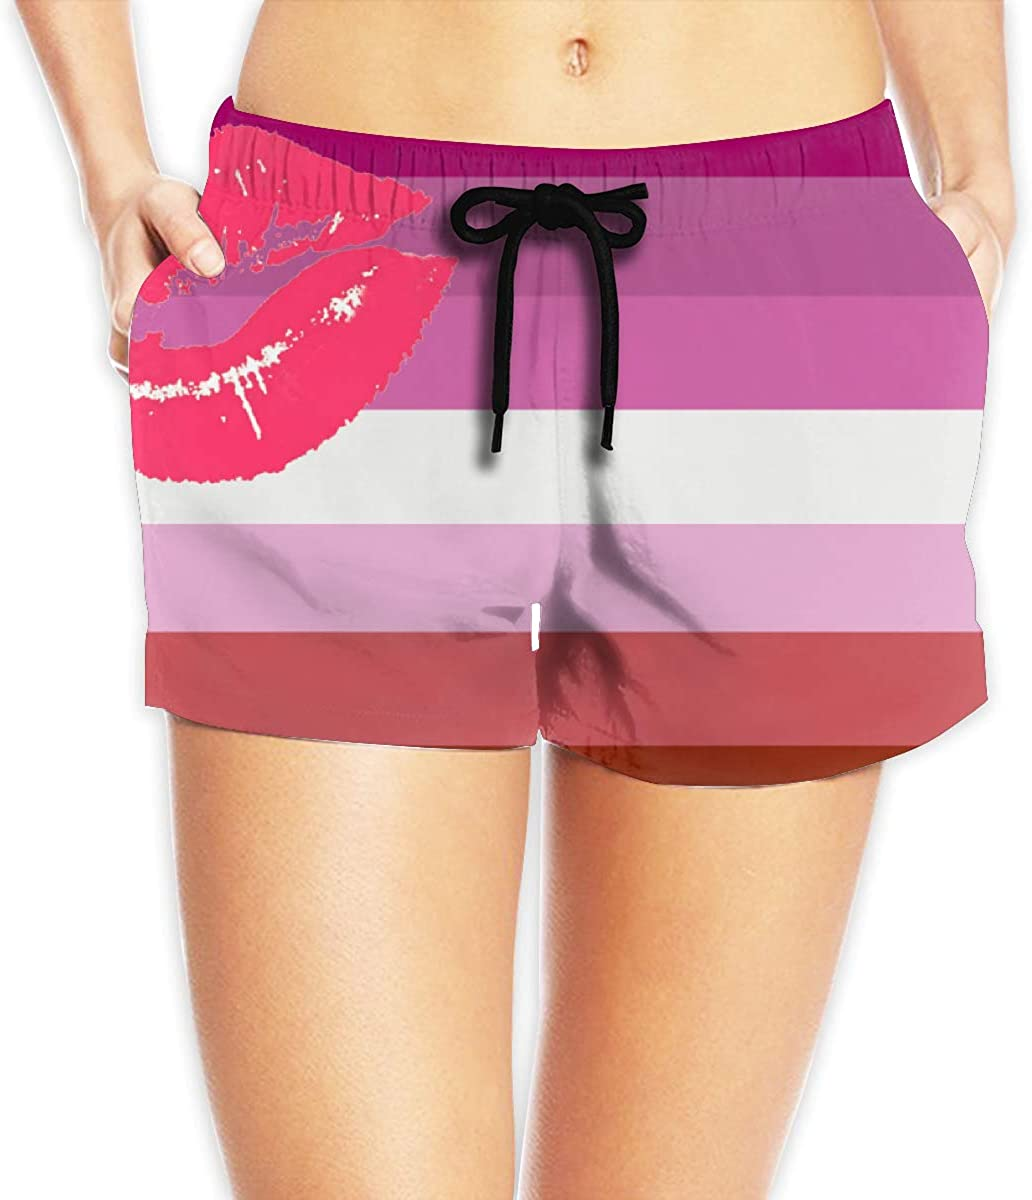 LzVong Lipstick Lesbian Pride Flag Women's Female Beach Pants Summer Beachwear Board Shorts